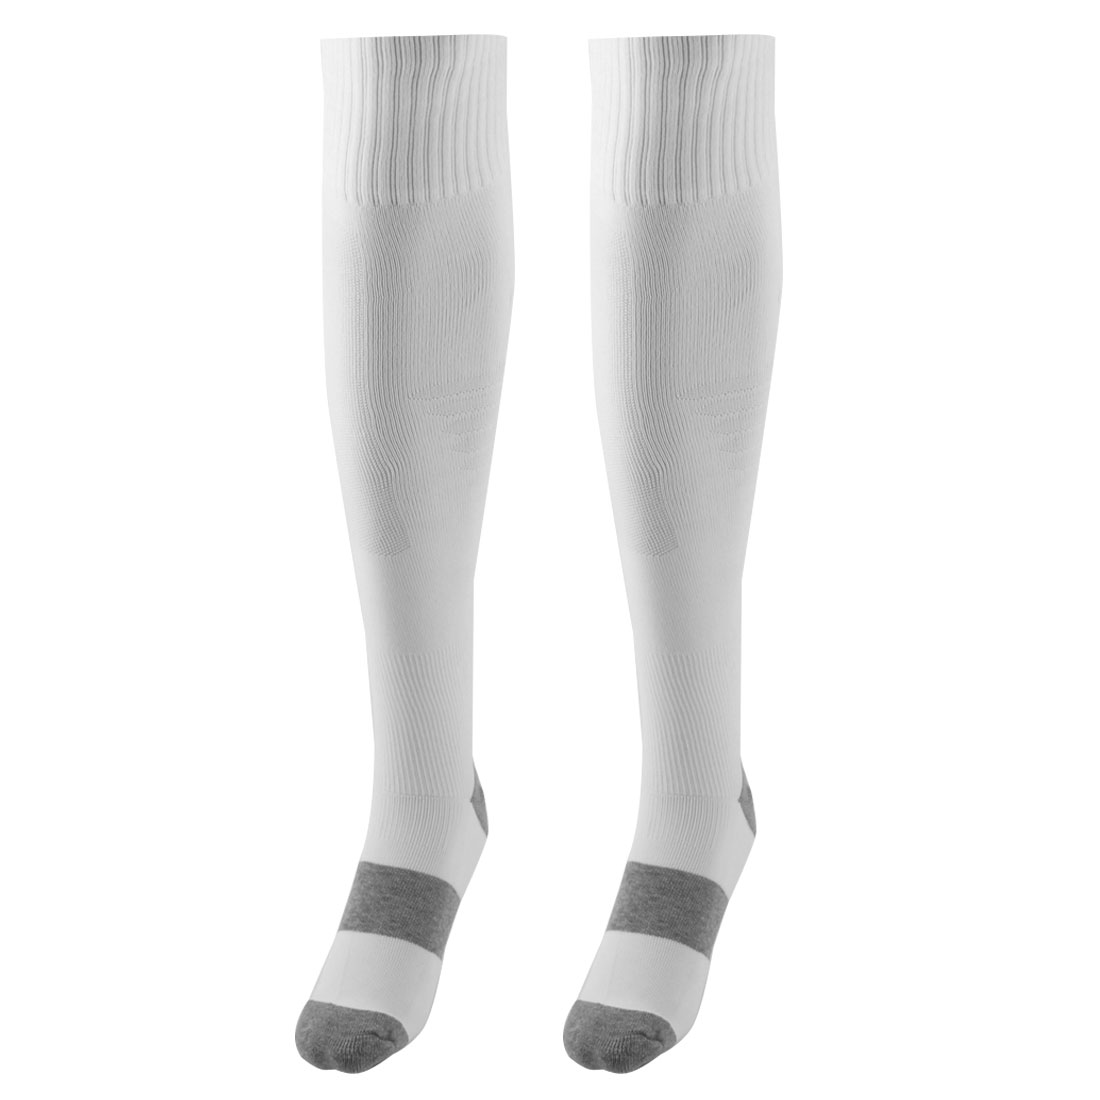 Unisex Outdoor Sports Nylon Non Slip Stretch Rugby Soccer Football Long Socks White Pair